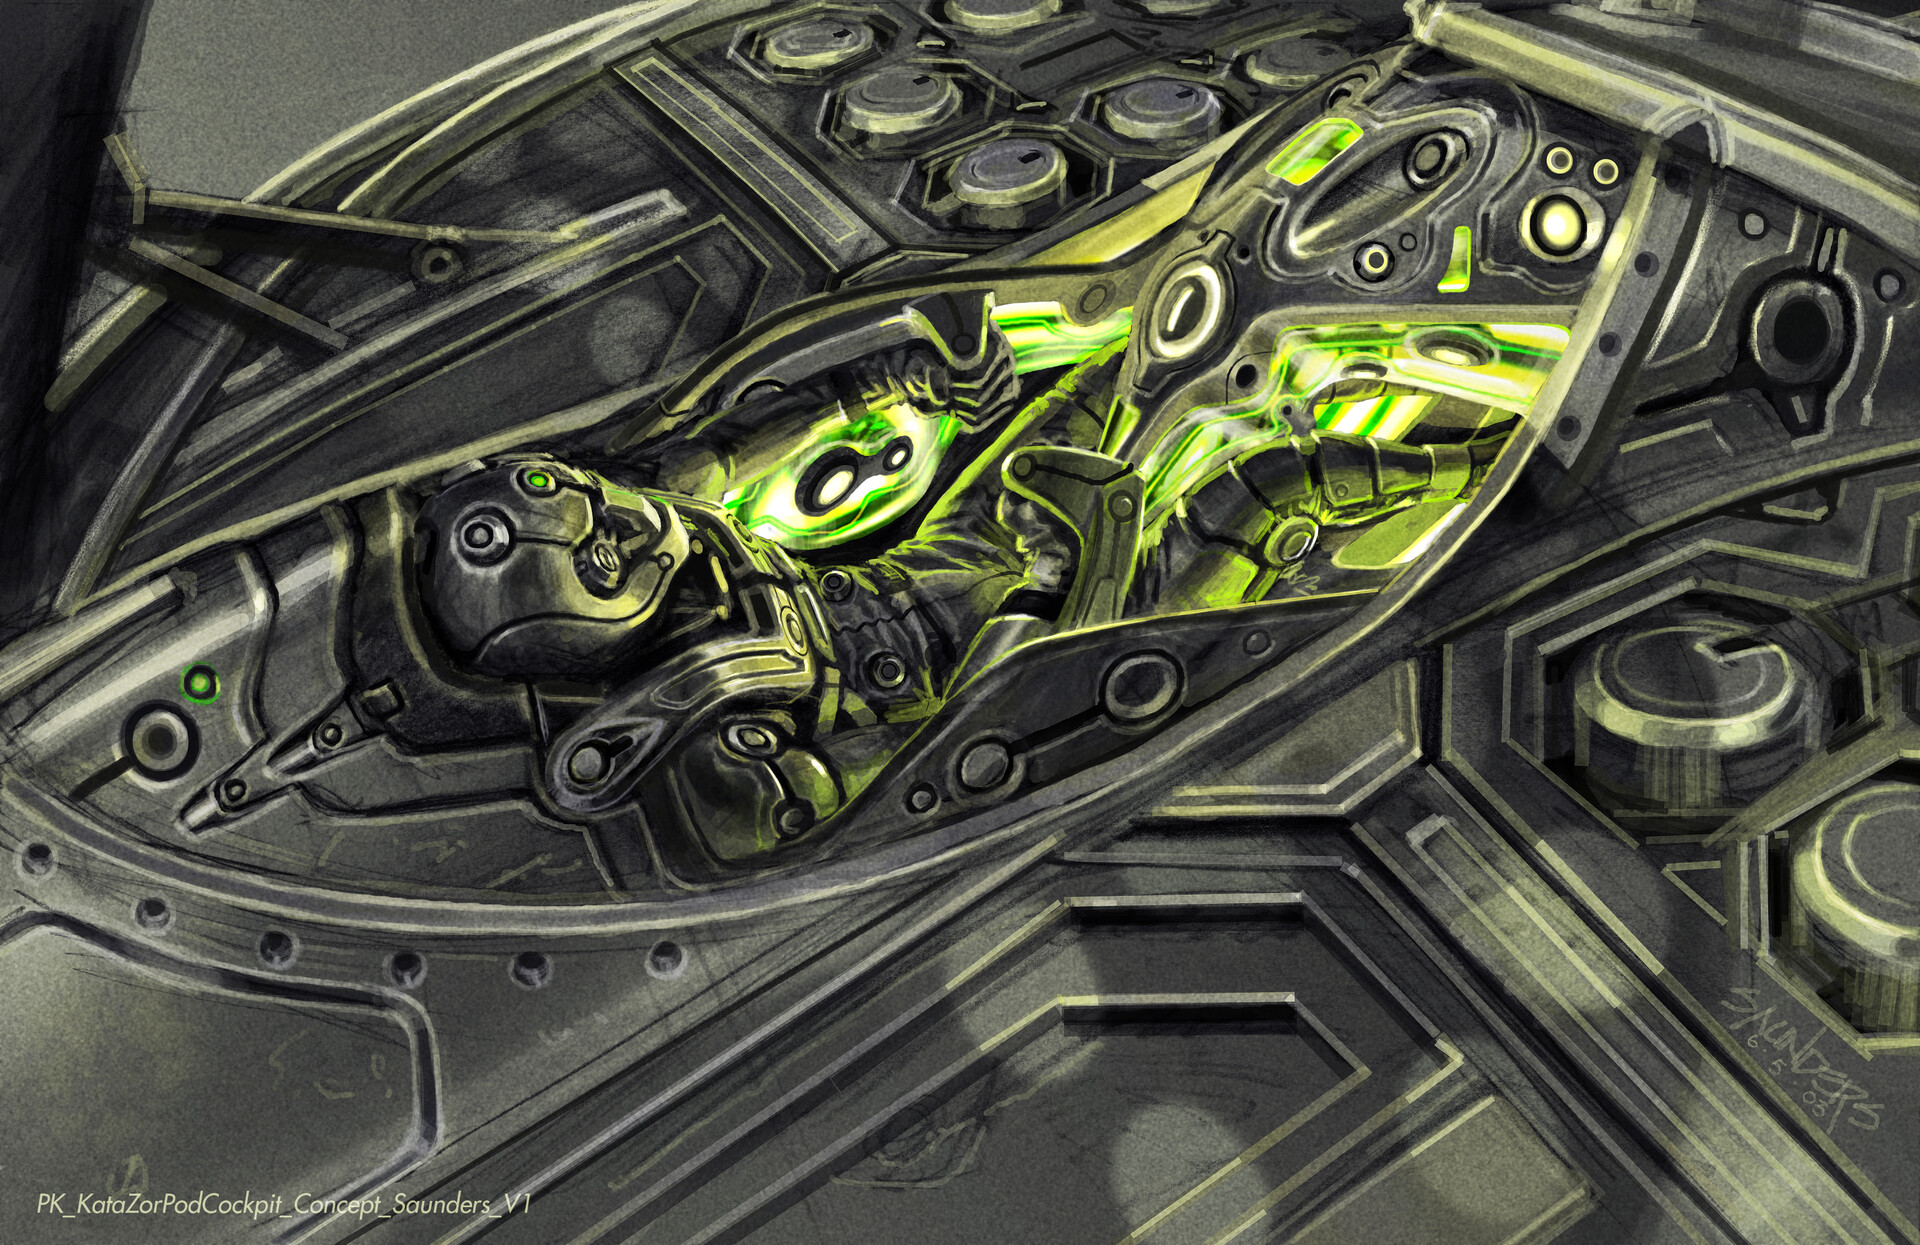 A rough prismacolor pencil sketch of the interior rendered in Photoshop. I envisioned the whole clamshell opening up to reveal the pilot's seat. The light circles cast on the surface would have been from the openings for the cylindrical mortar batteries.